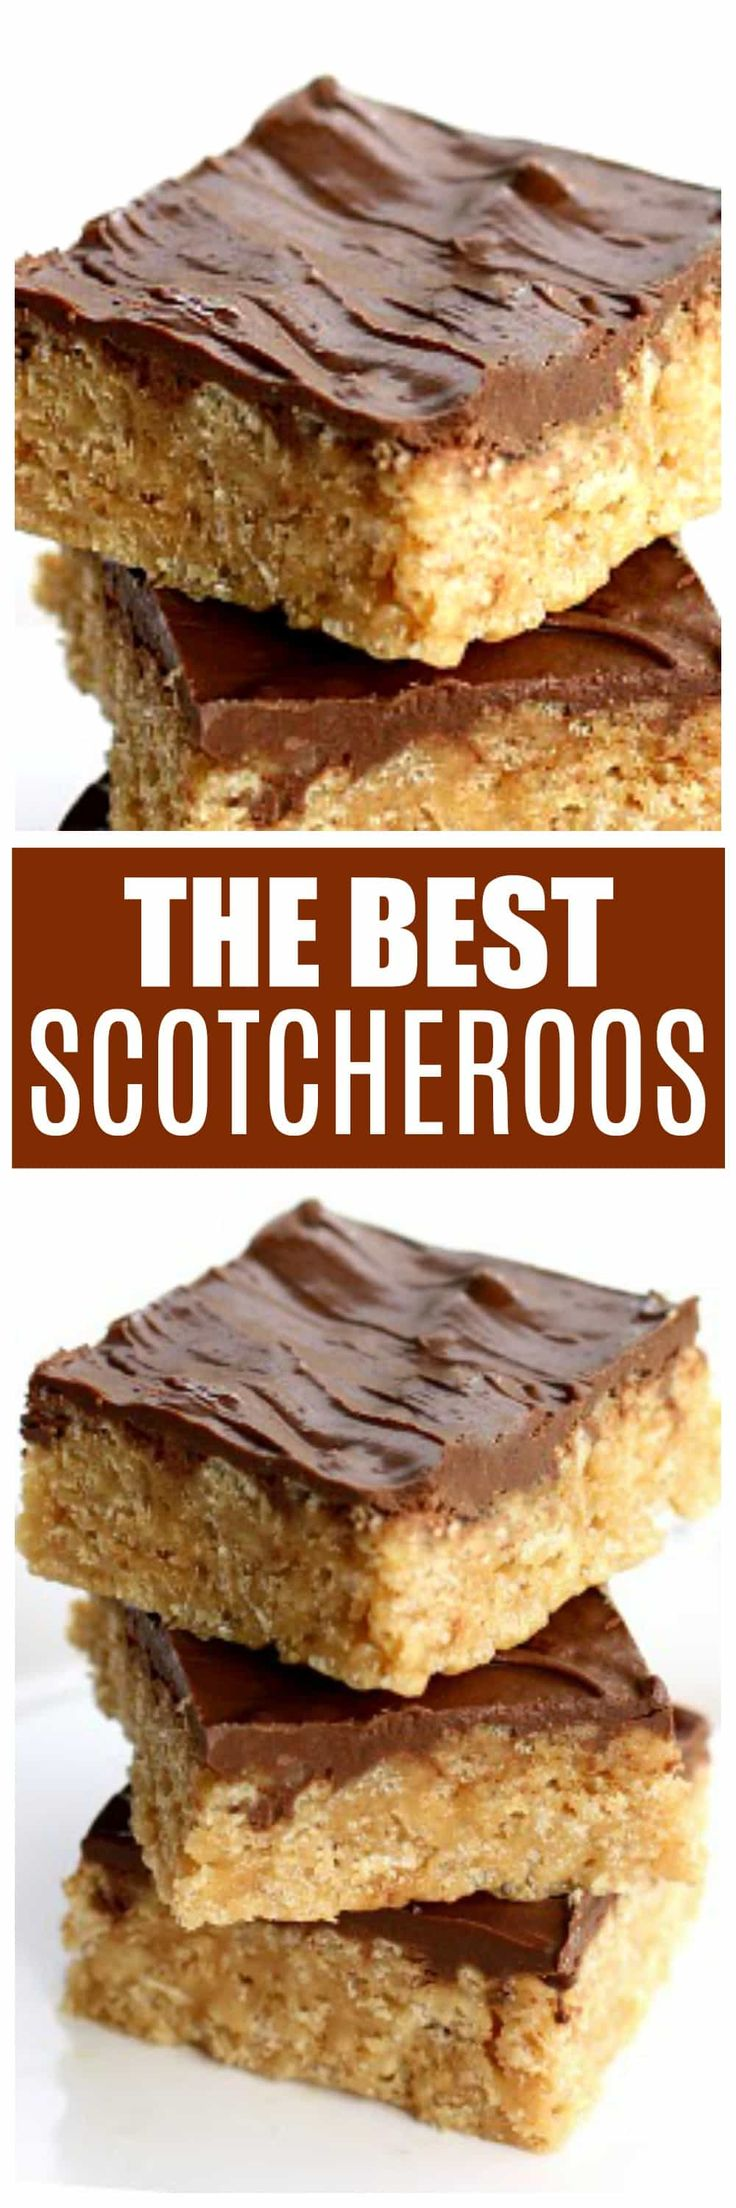 This is the best Scotcheroo recipe that I've been making for years!